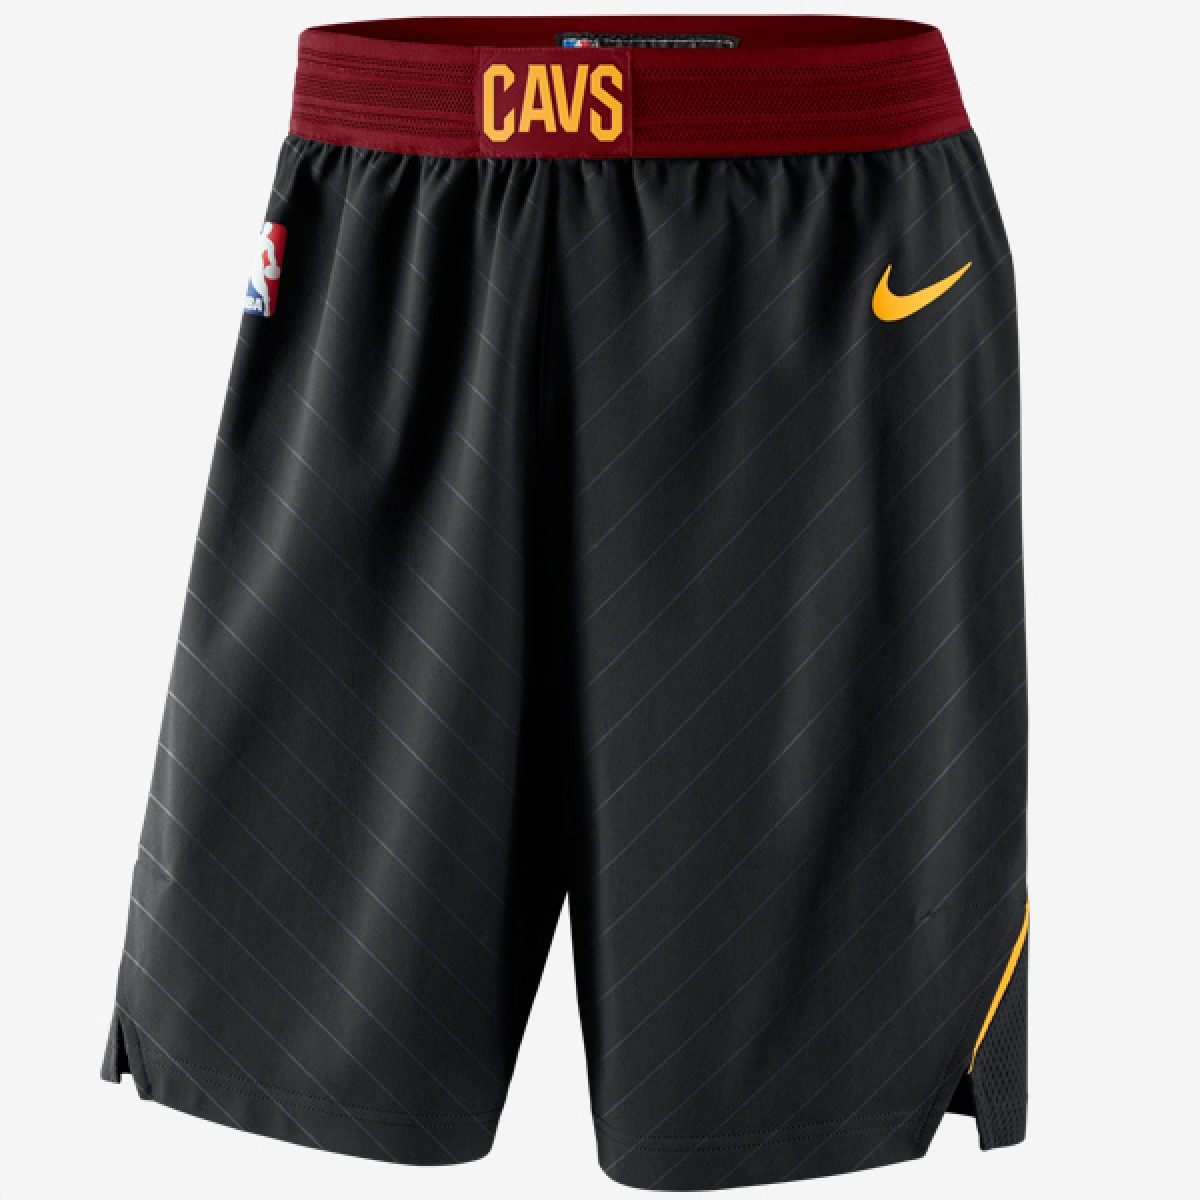 Nike NBA Cavs Authentic Short 'Statement Edition'